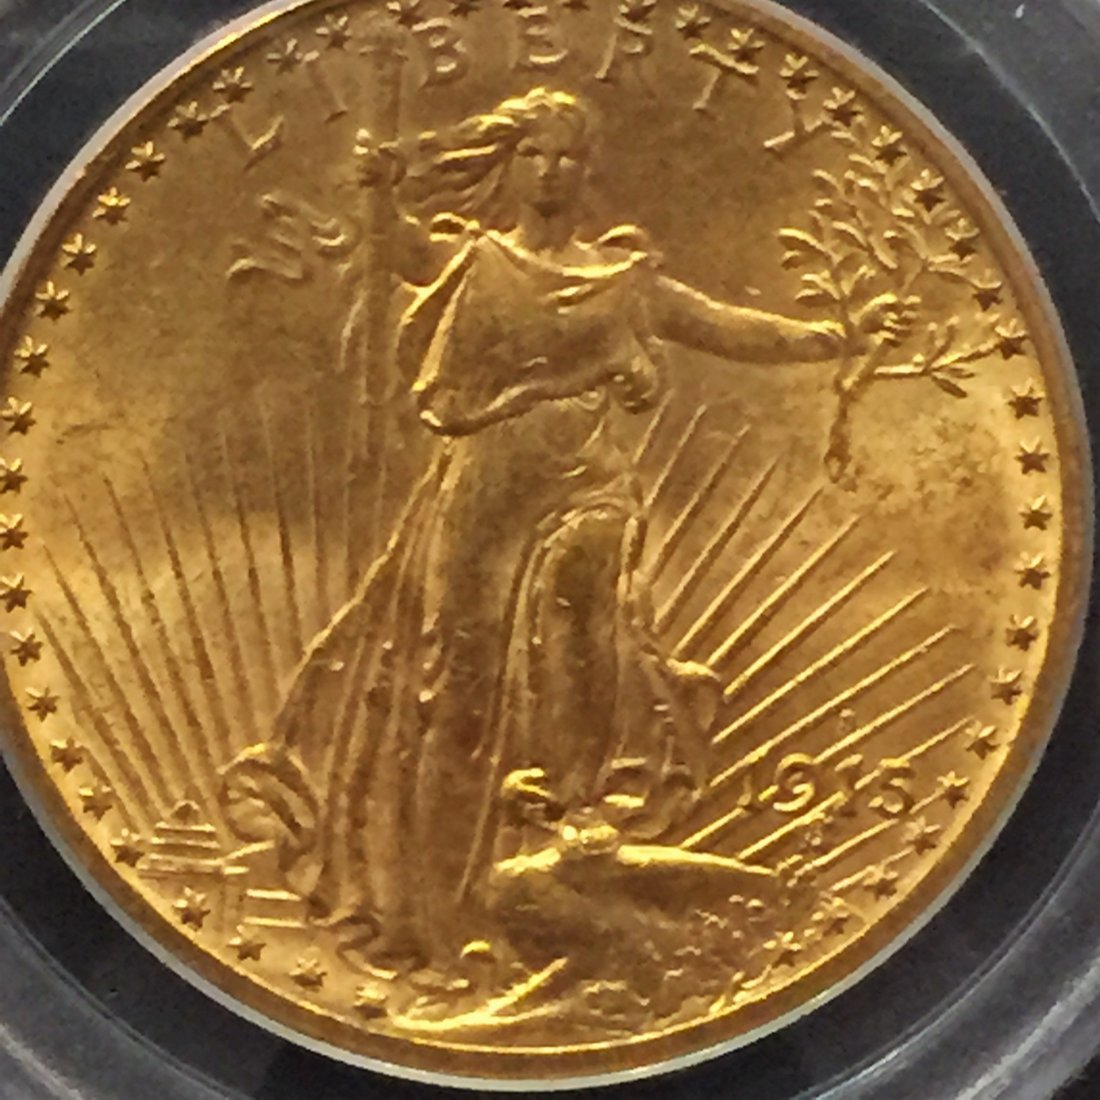 1915 $20 Gold Walking Liberty in AU58 Condition - 3